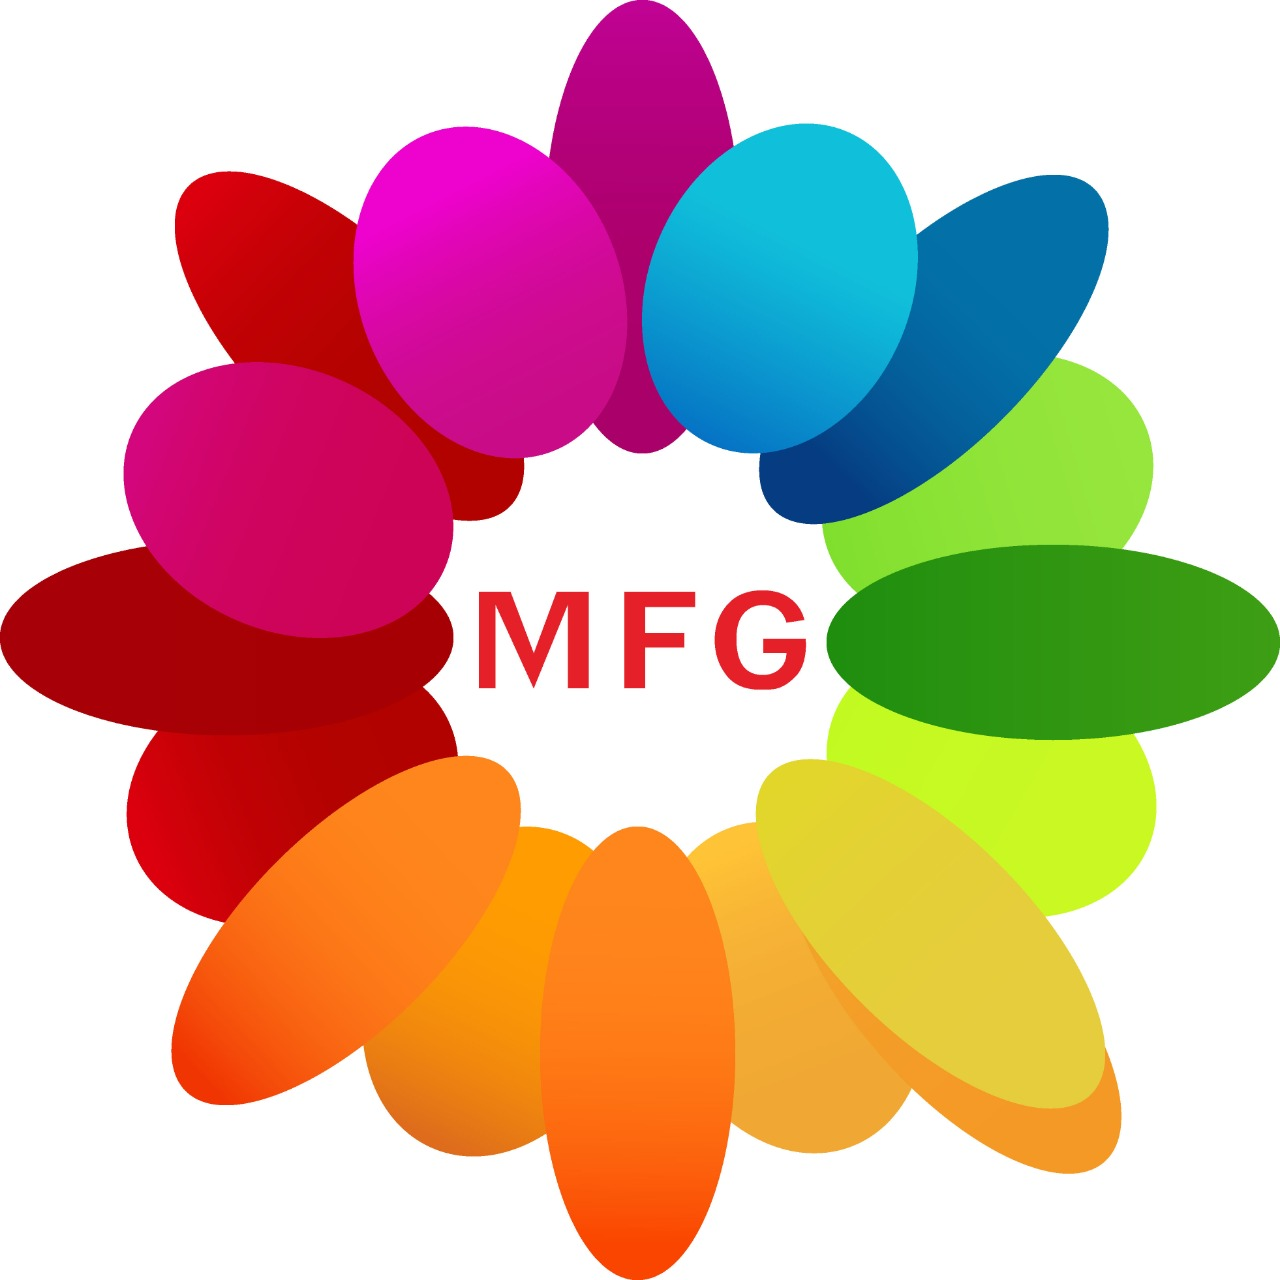 Half kg chocovanilla cake with 6 inch teddy bear